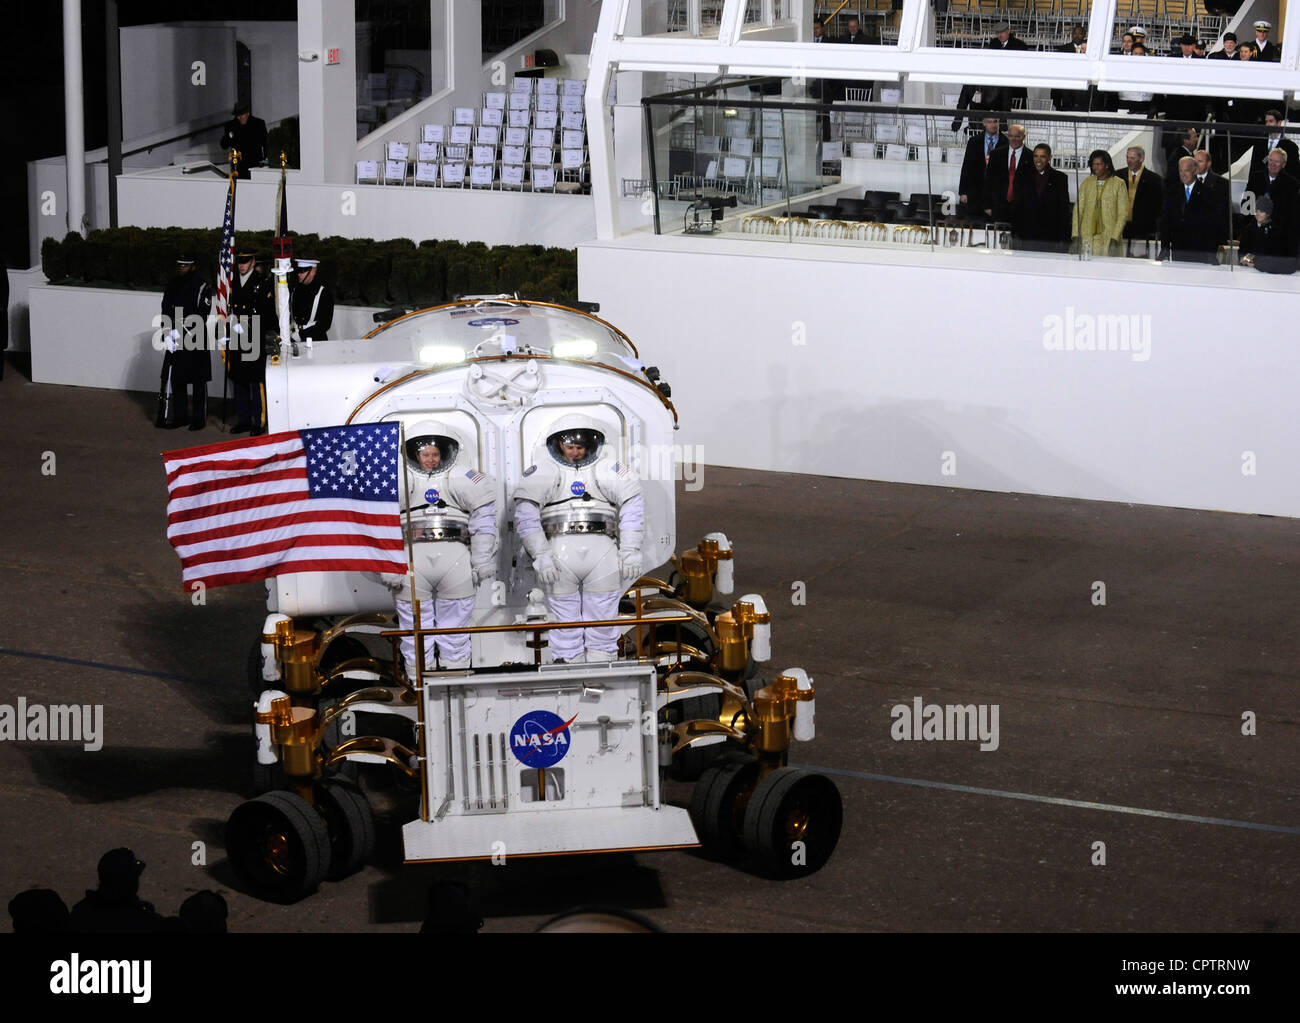 Lunar Electric Rover at 2009 Presidential inauguration parade - Stock Image